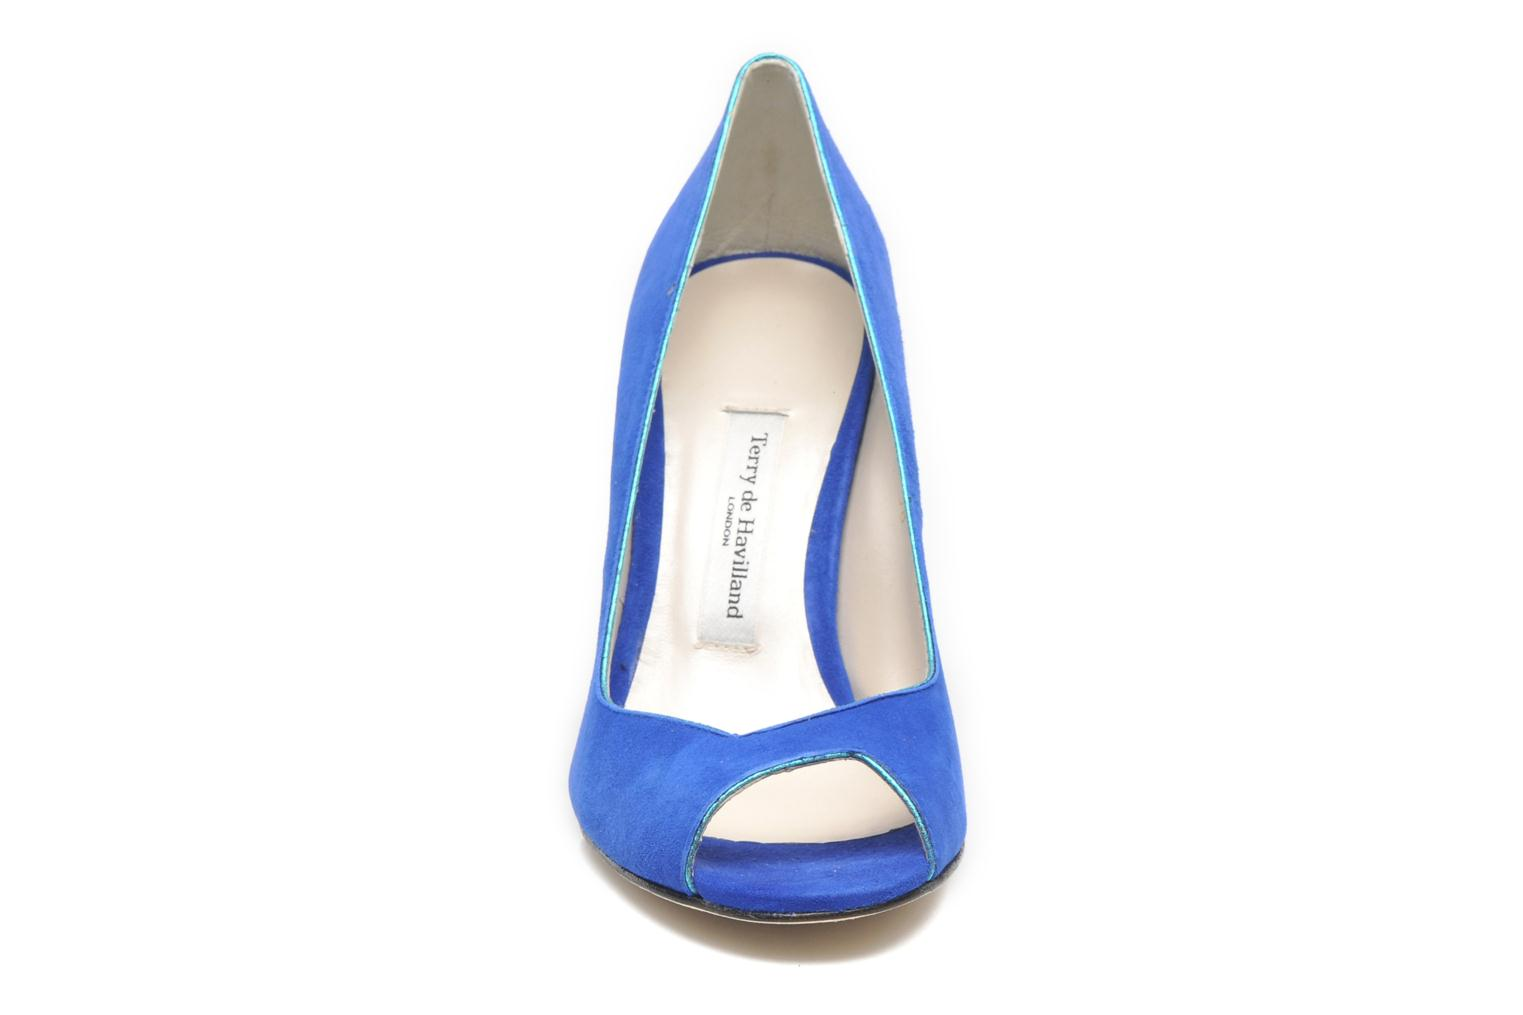 Chloe Electric Blue